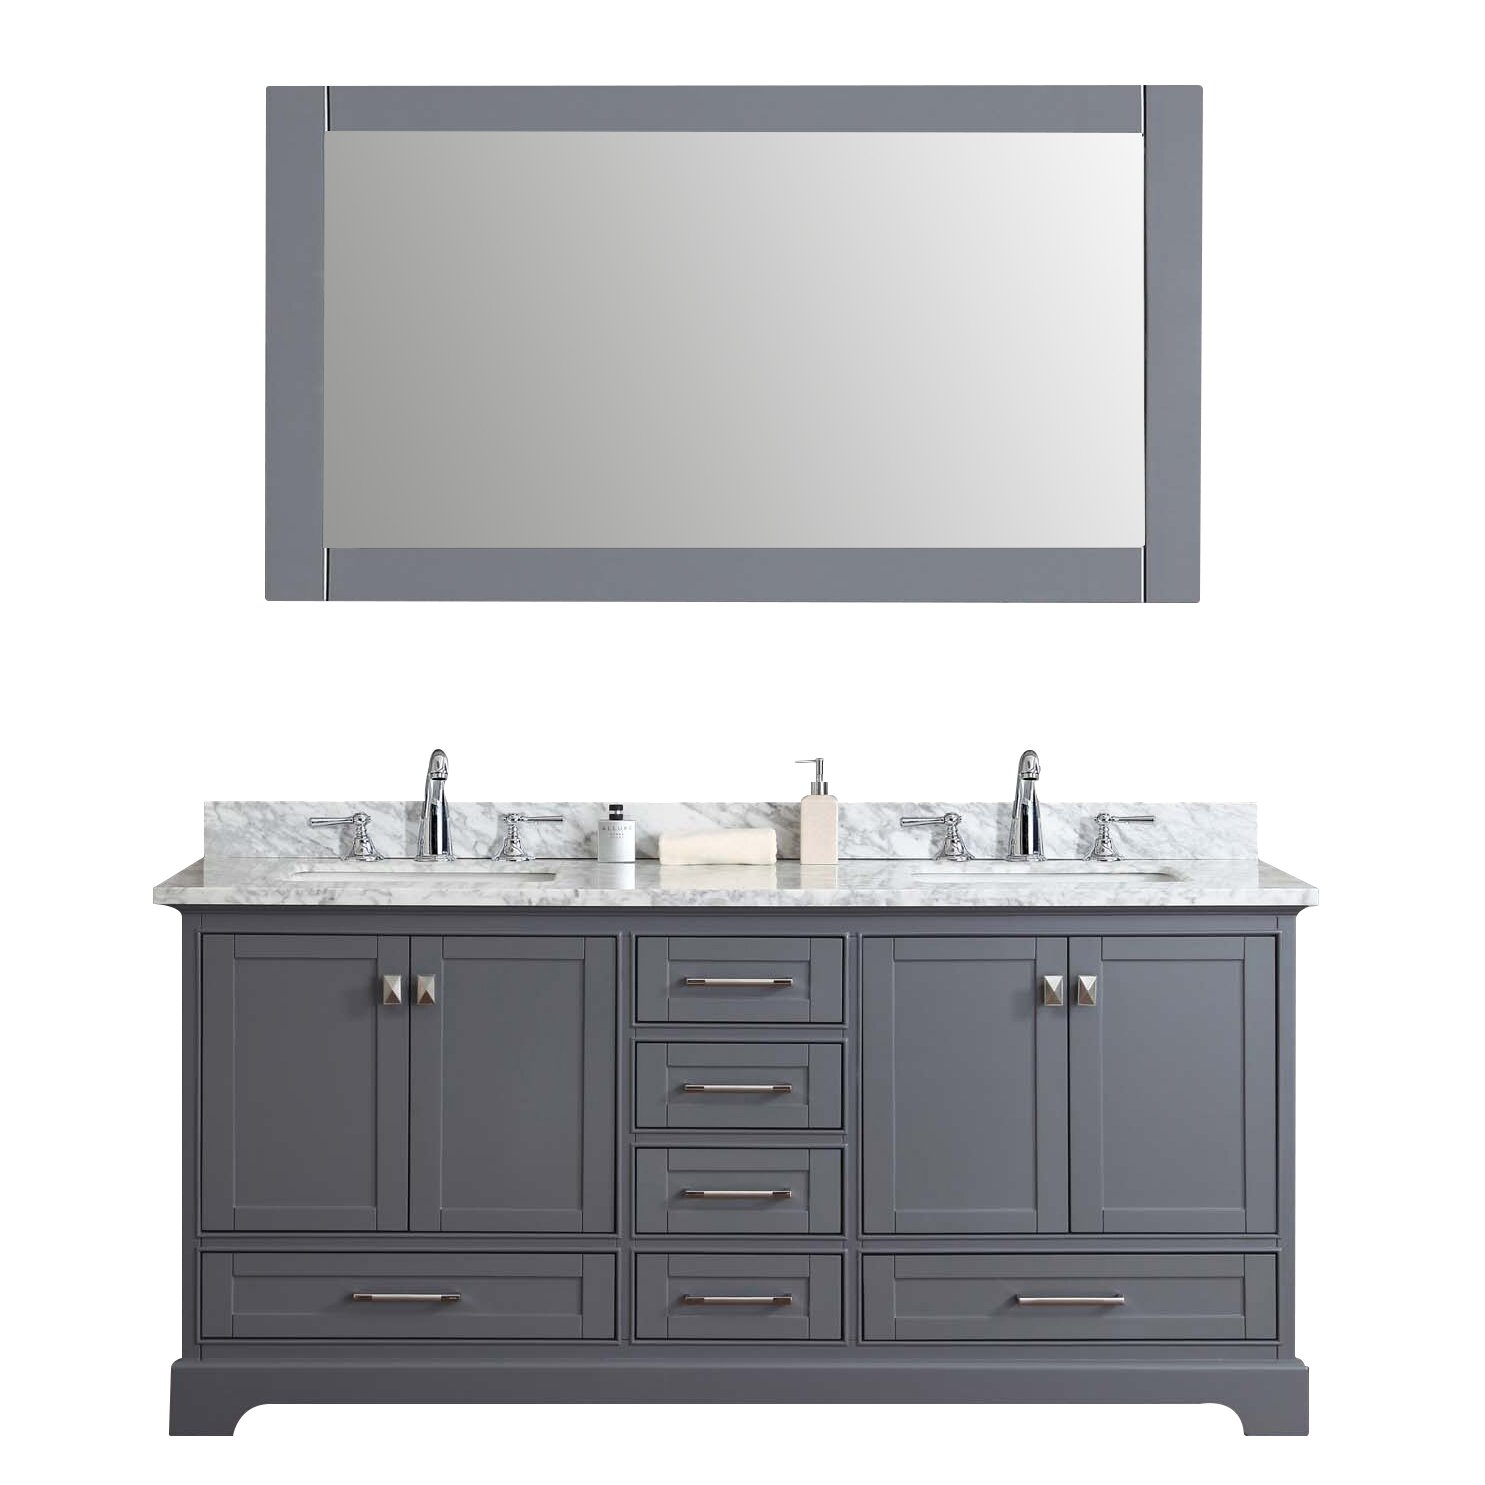 Dcor Design 72 Double Sink Bathroom Vanity Set With Mirror Reviews Wayfair